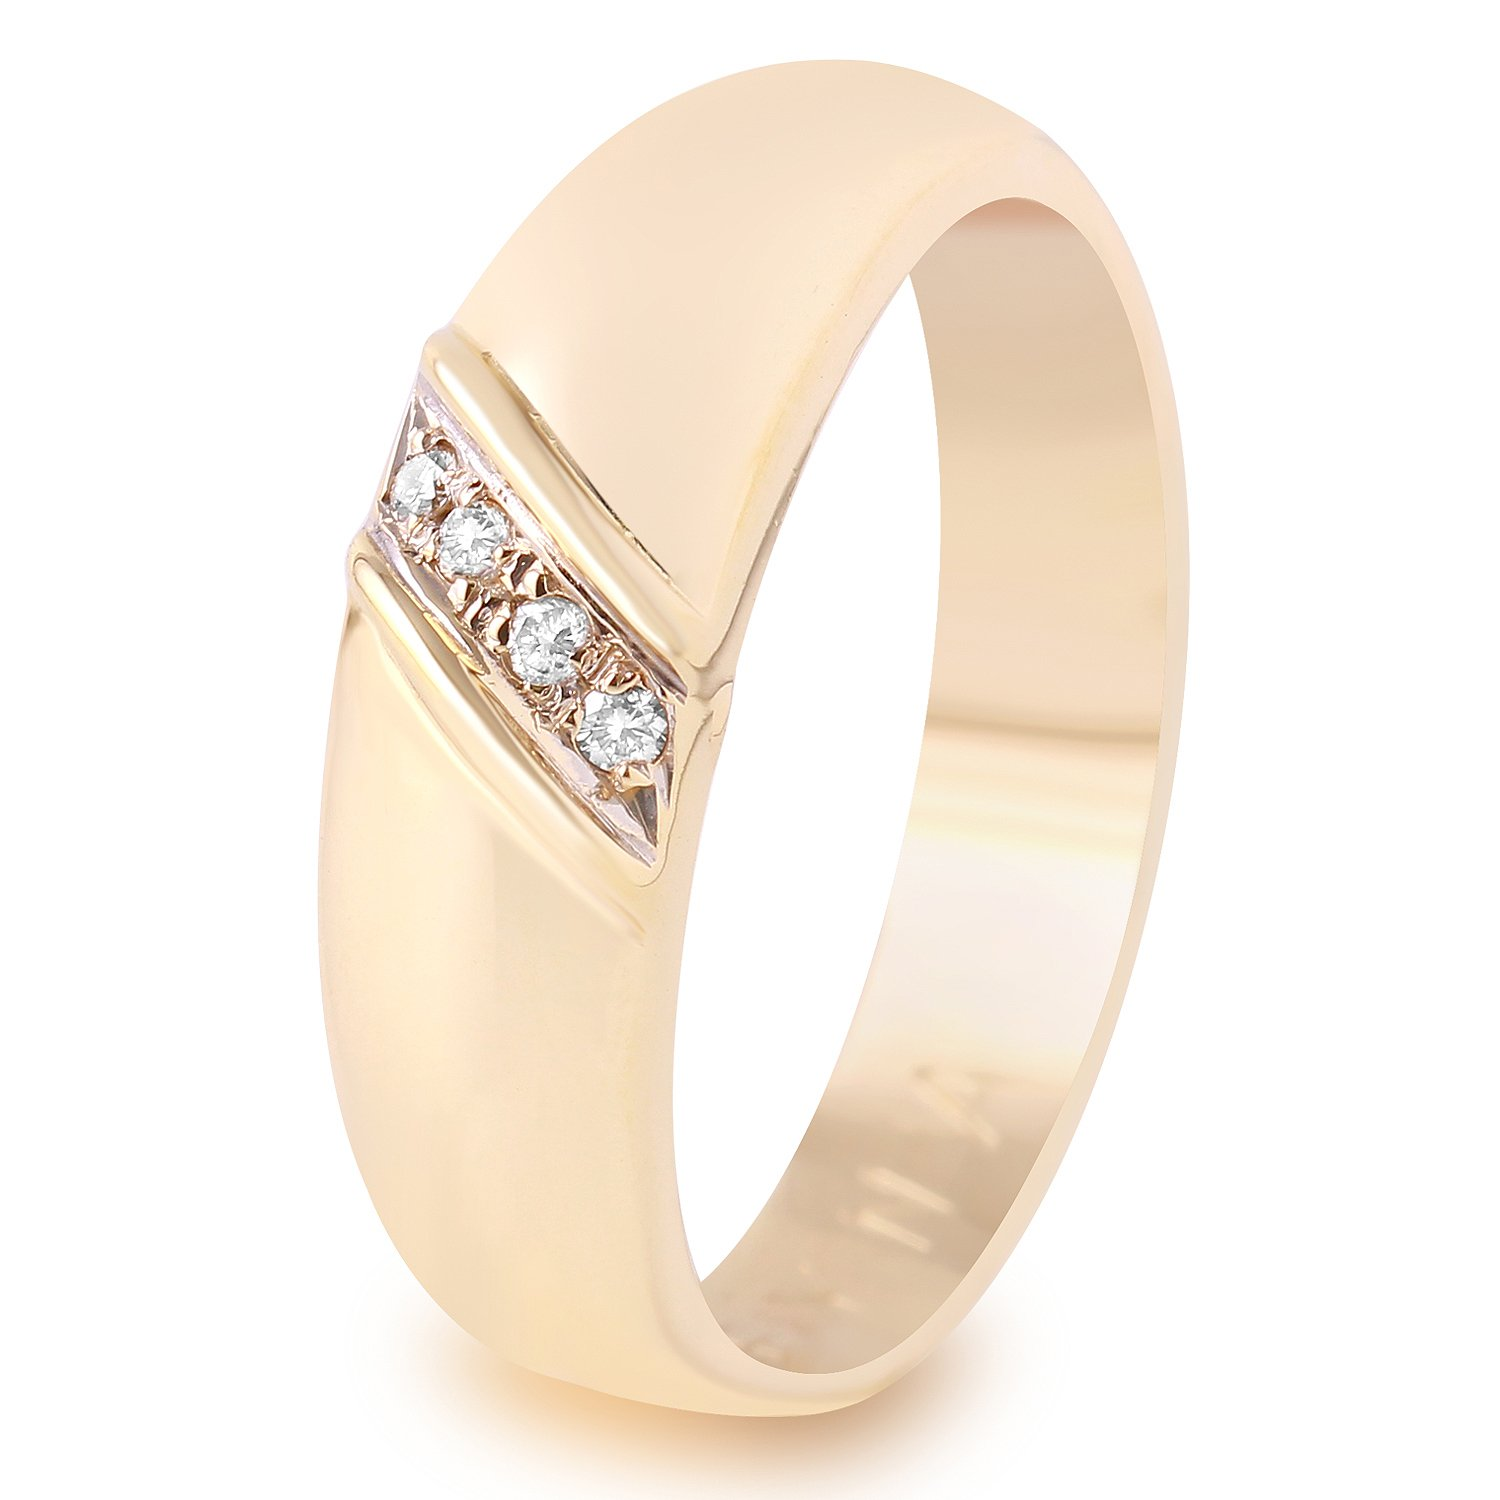 0.07 Carat Natural Fancy Yellow Diamond 14K Yellow Gold Wedding Band for Men Size 11